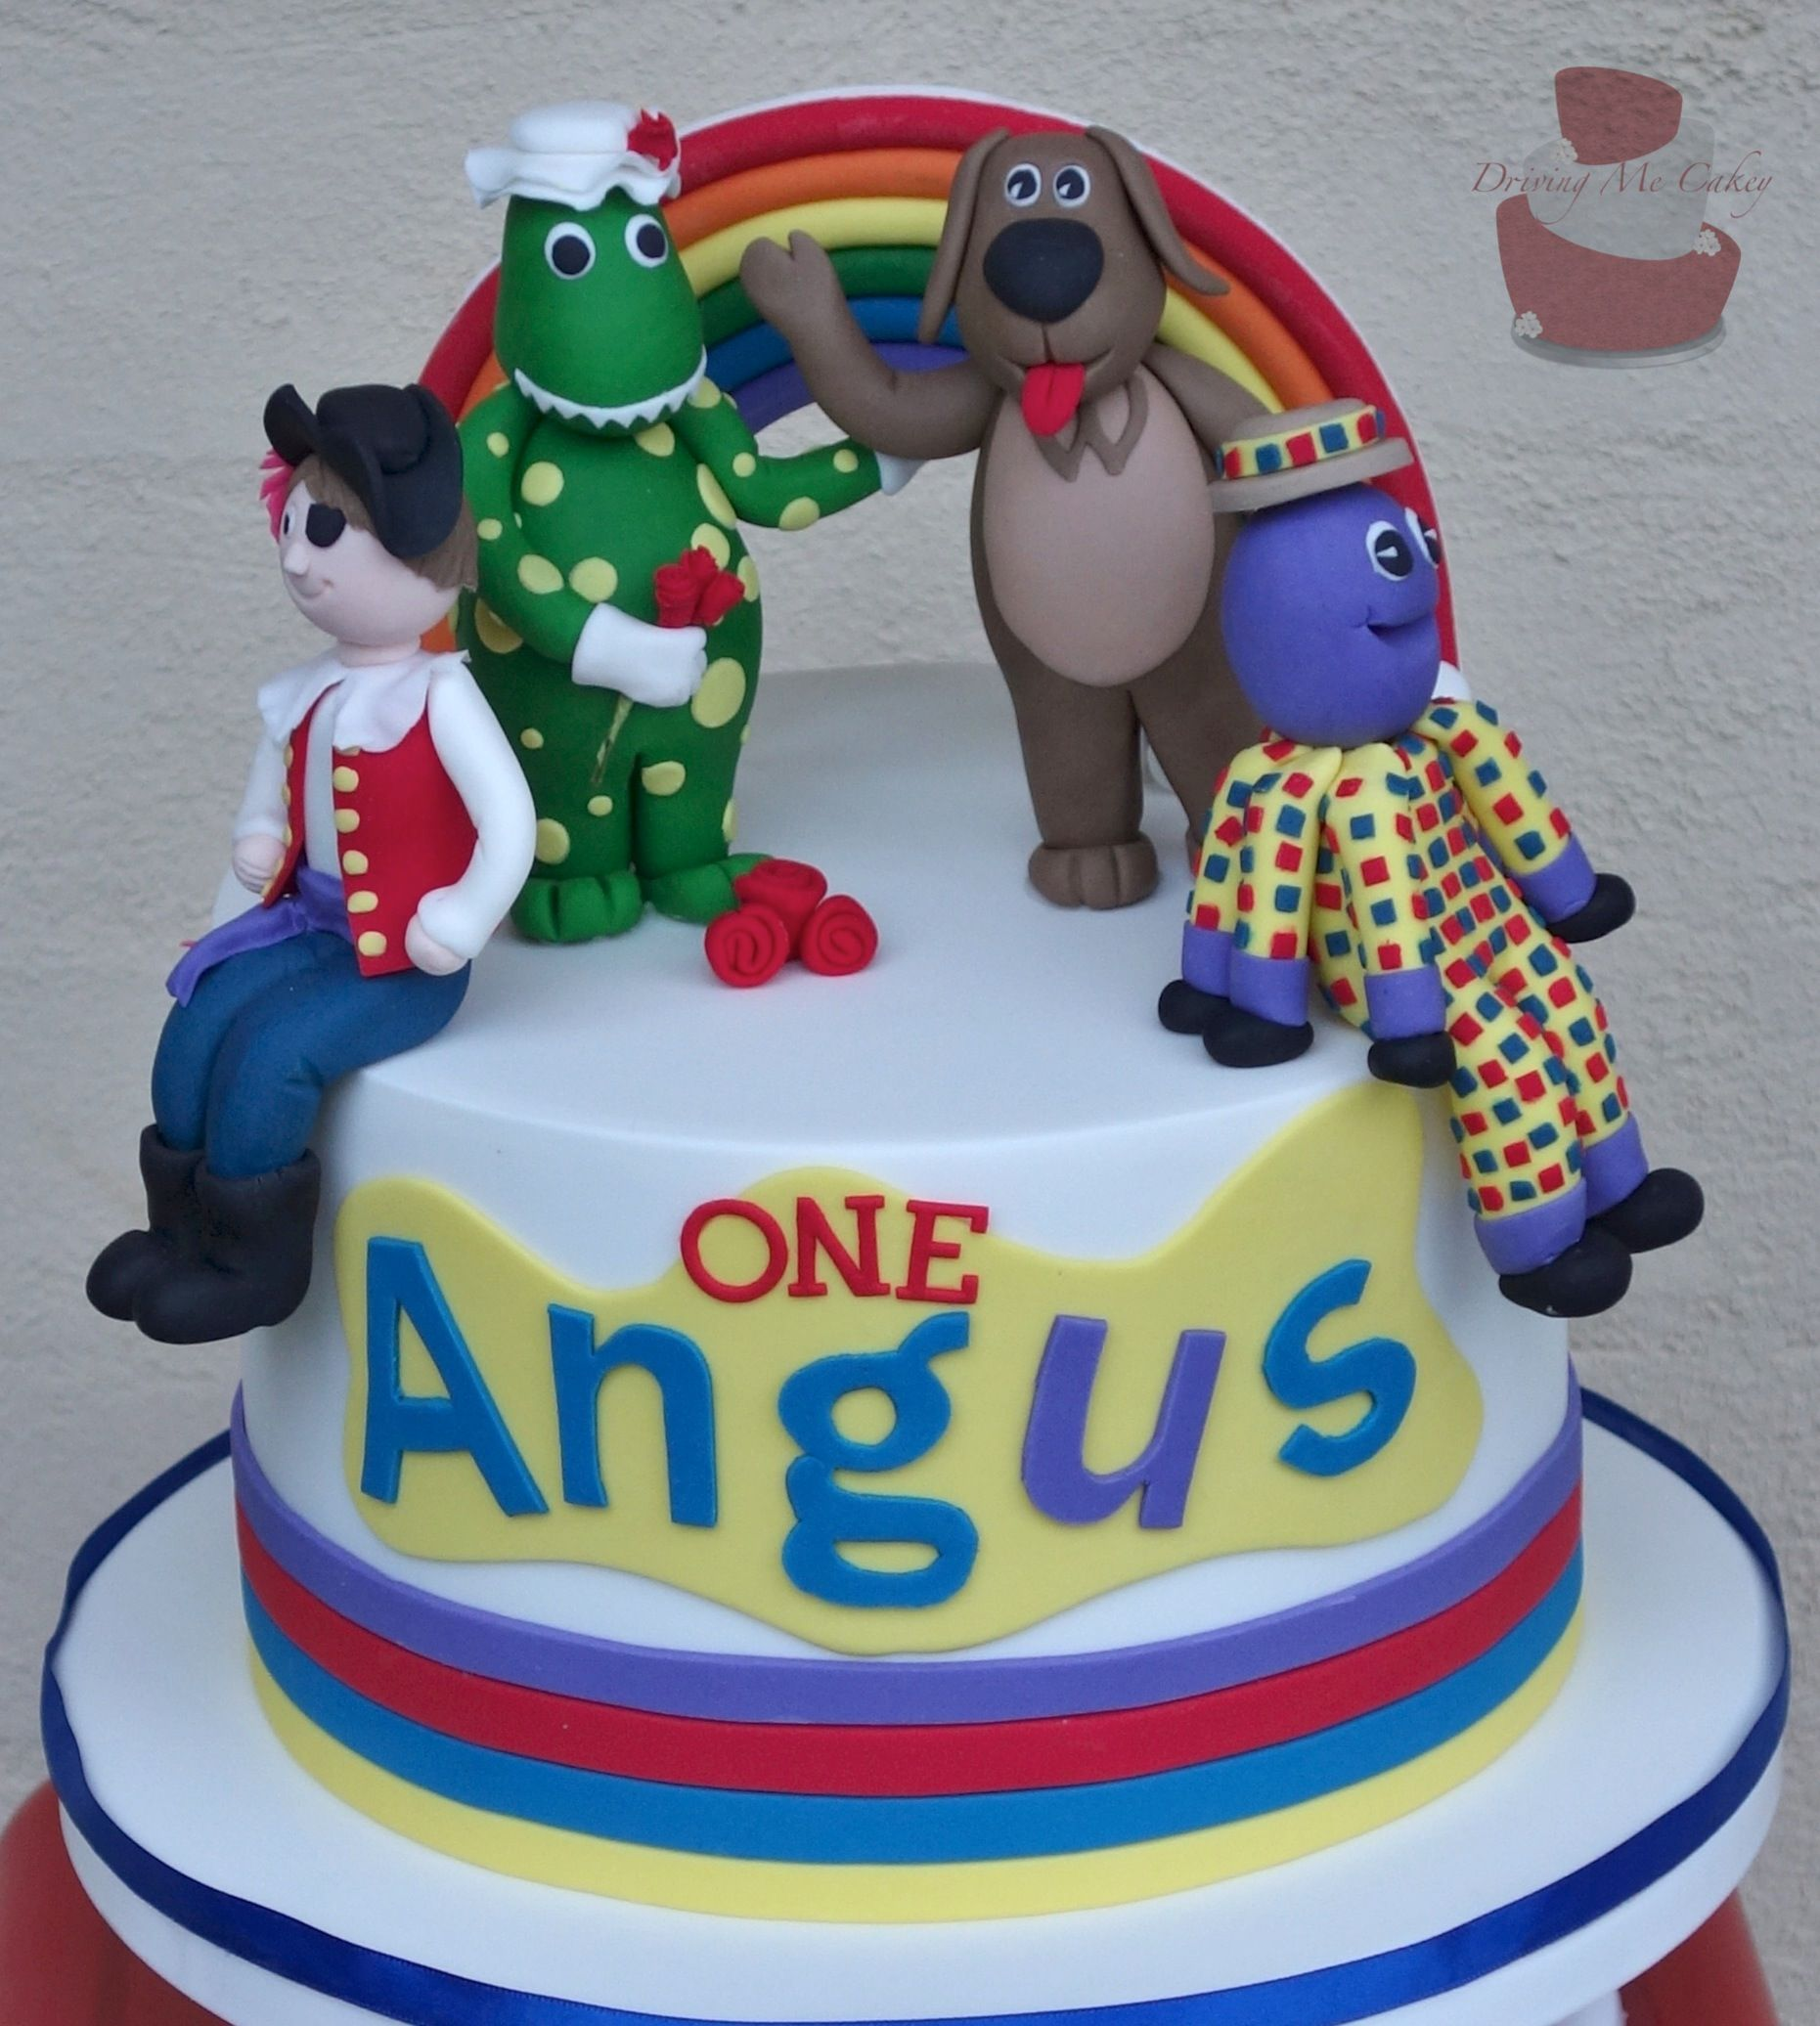 Wiggles Birthday cake with hand modelled Rainbow Wags the dog